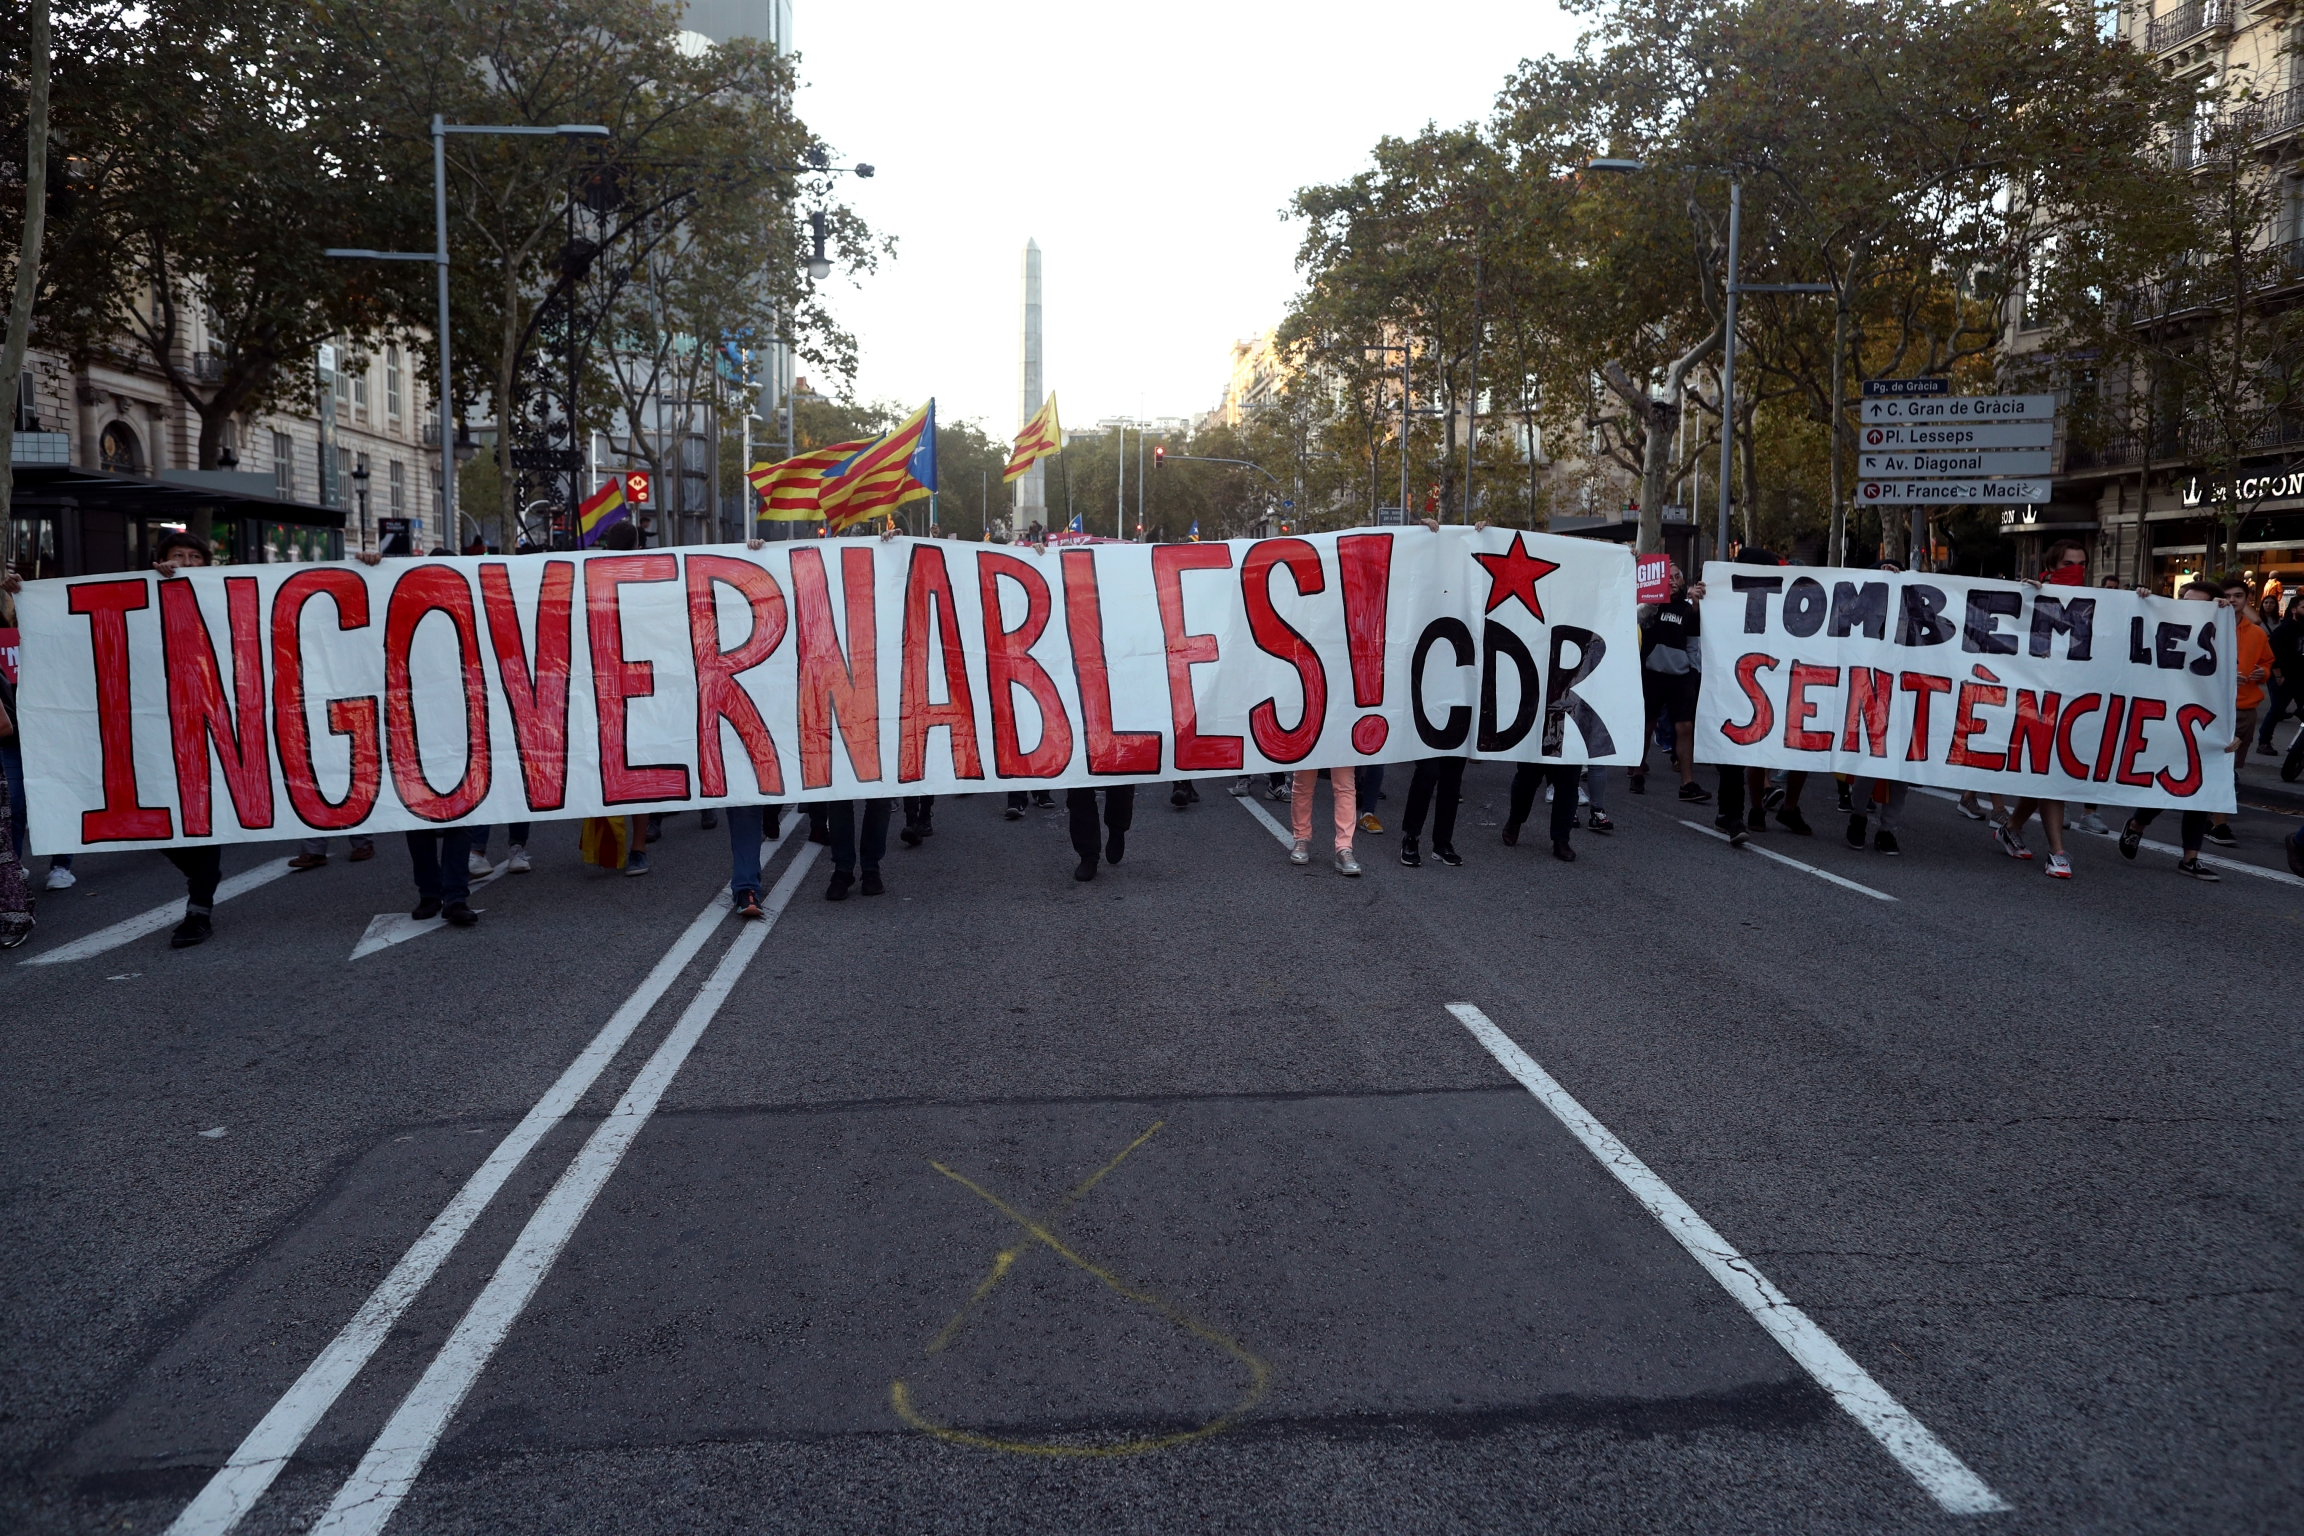 A group of protesters hold a large sign with red lettering on white cloth